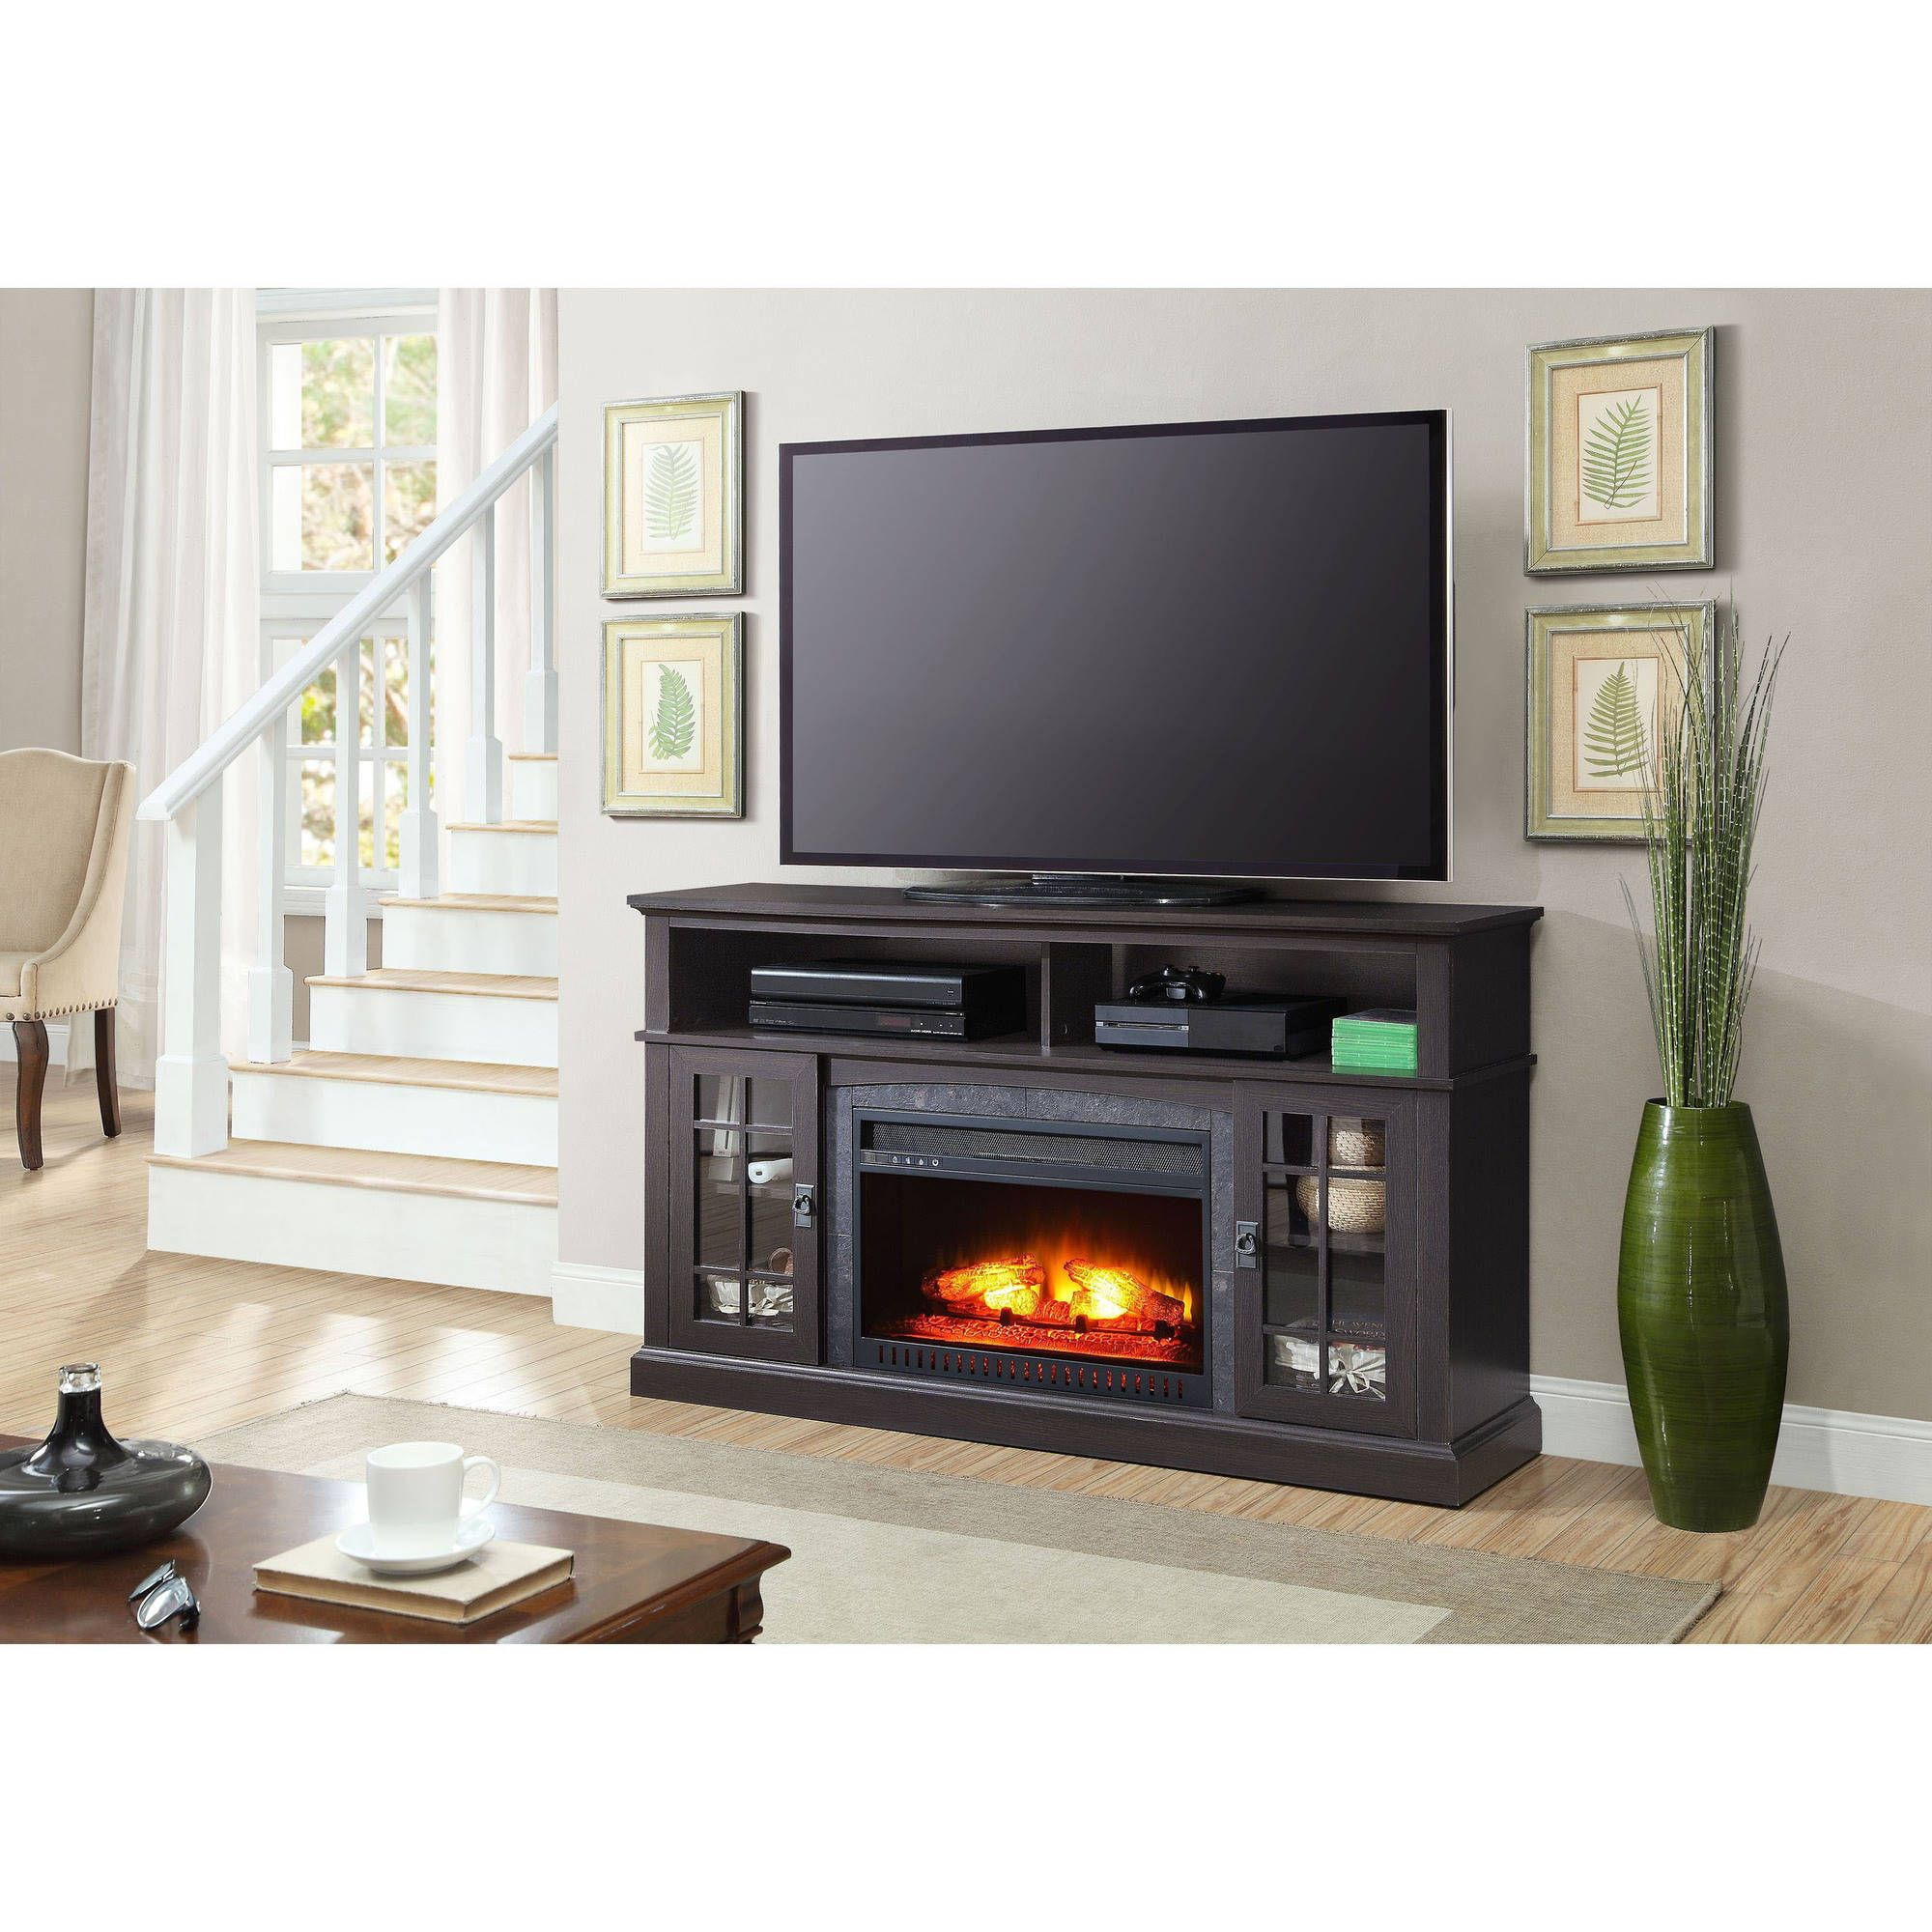 Walmart Black Electric Fireplace Whalen Barston Media Fireplace For Tv S Up To 70 Multiple Finishes